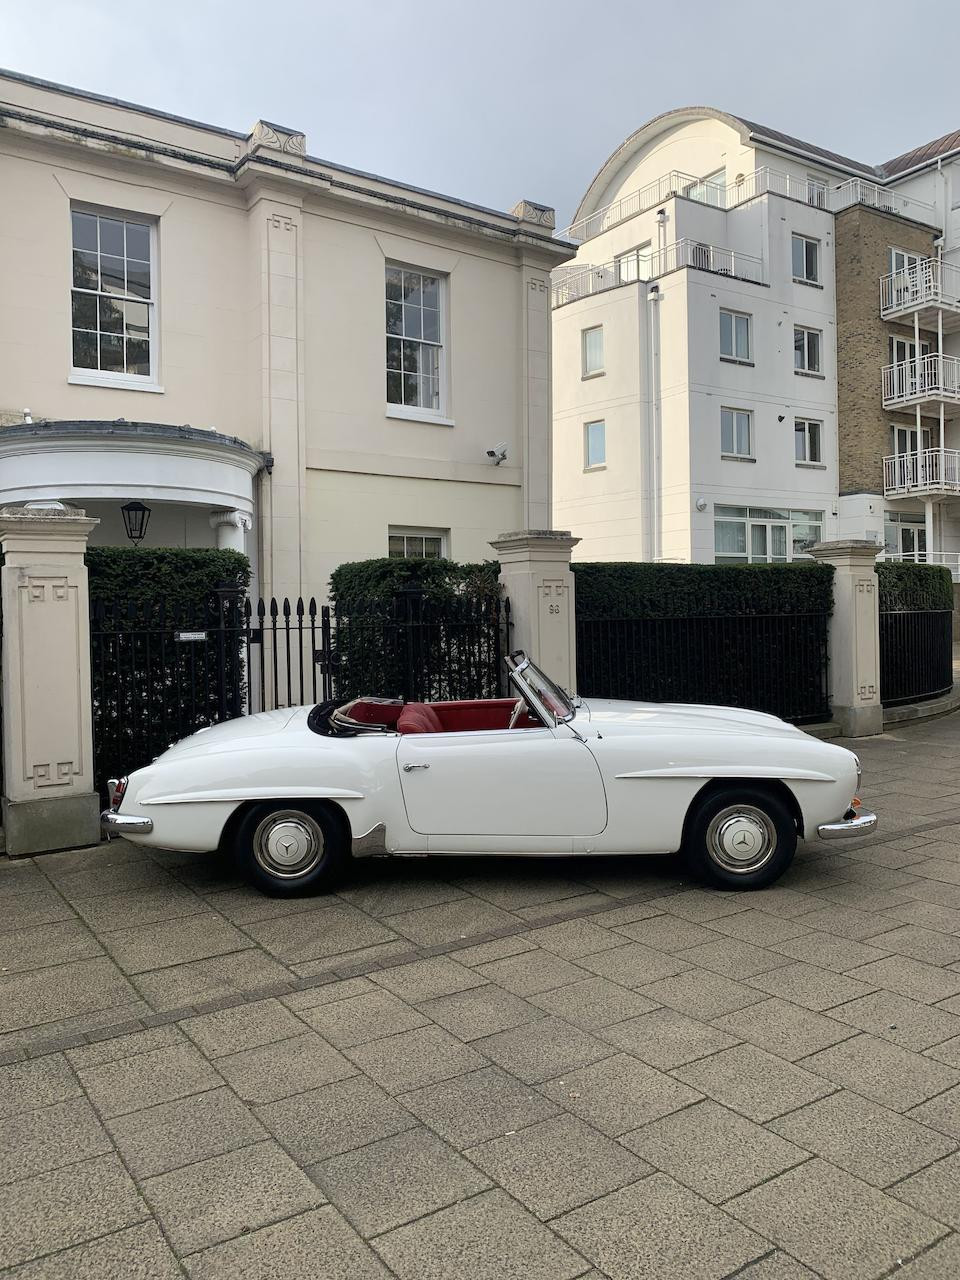 1961 Mercedes-Benz 190 SL Convertible  Chassis no. 121 042 10 022167